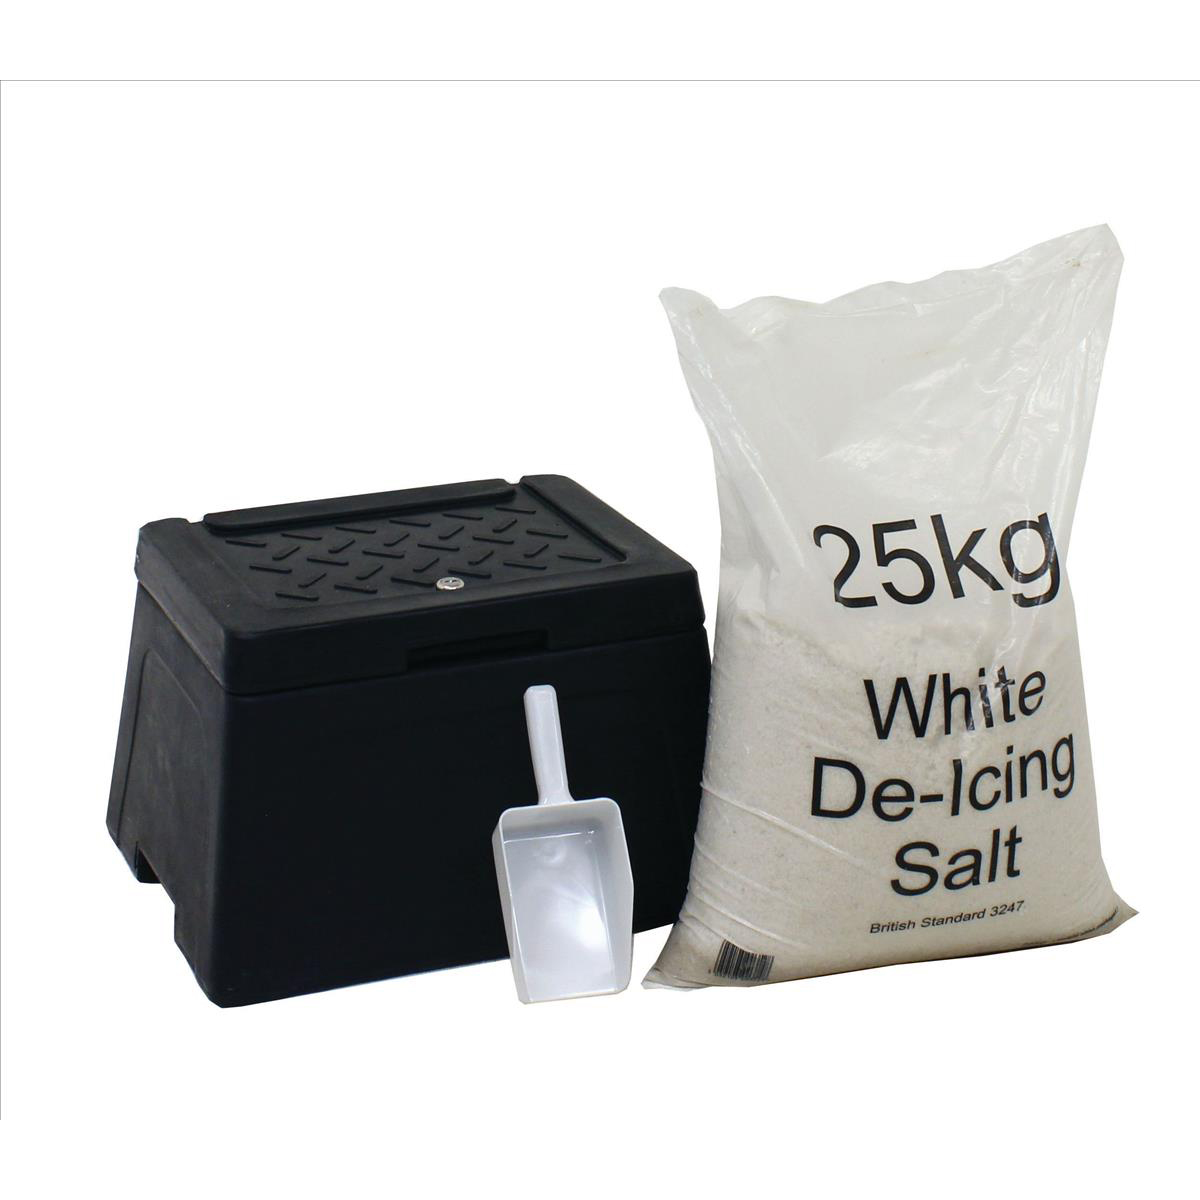 Grit Bins & Accessories Mini Grit Bin Lockable with Scoop and 25kg Salt Bag